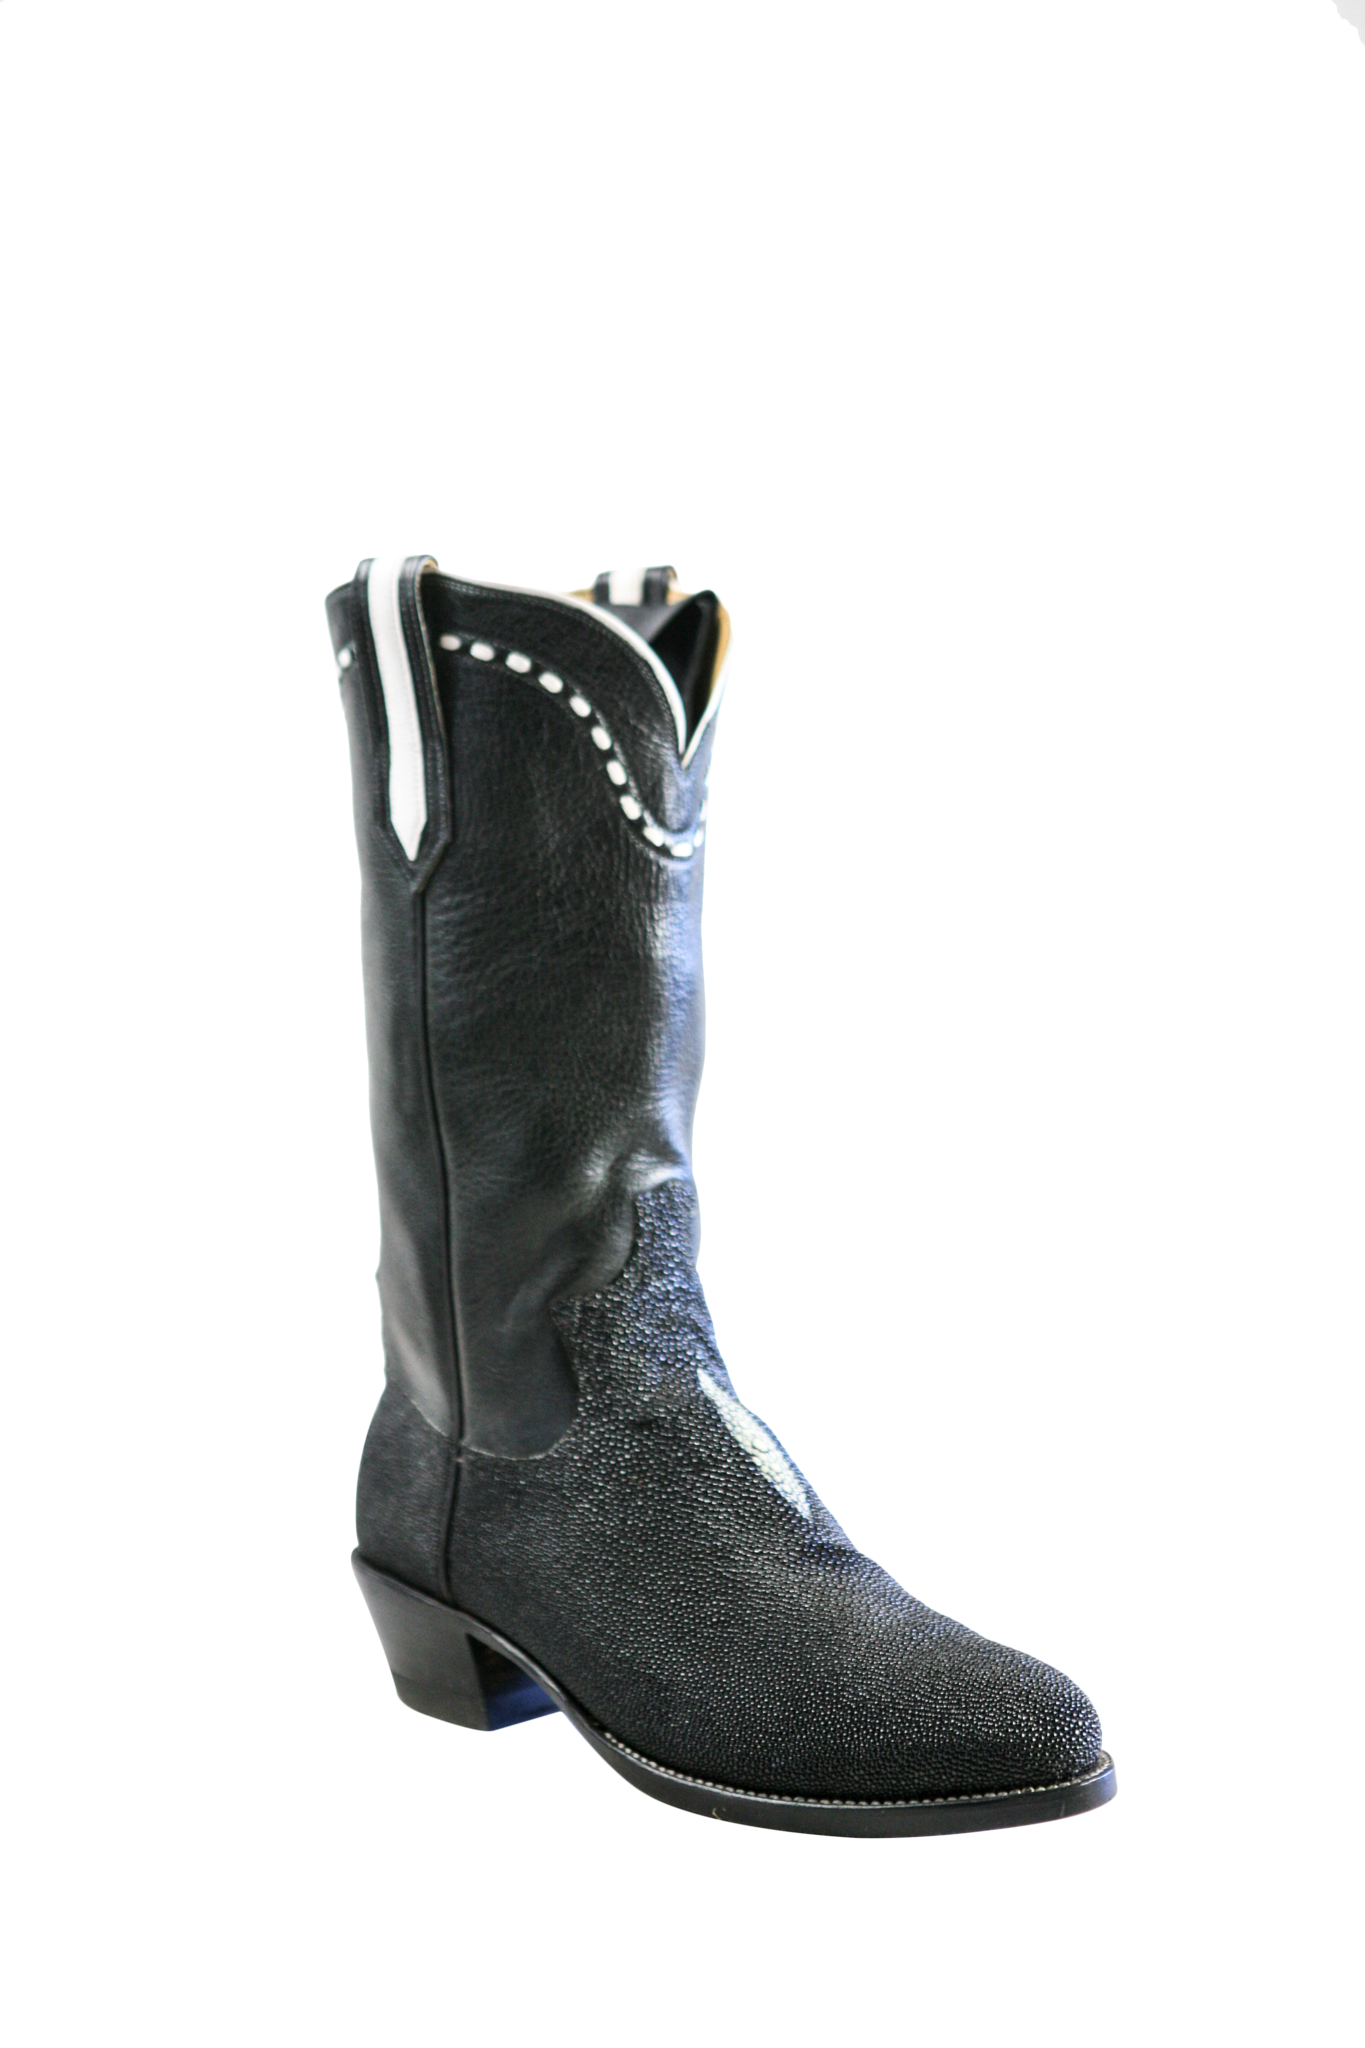 Singles: Boot 0272: Size 10.5B